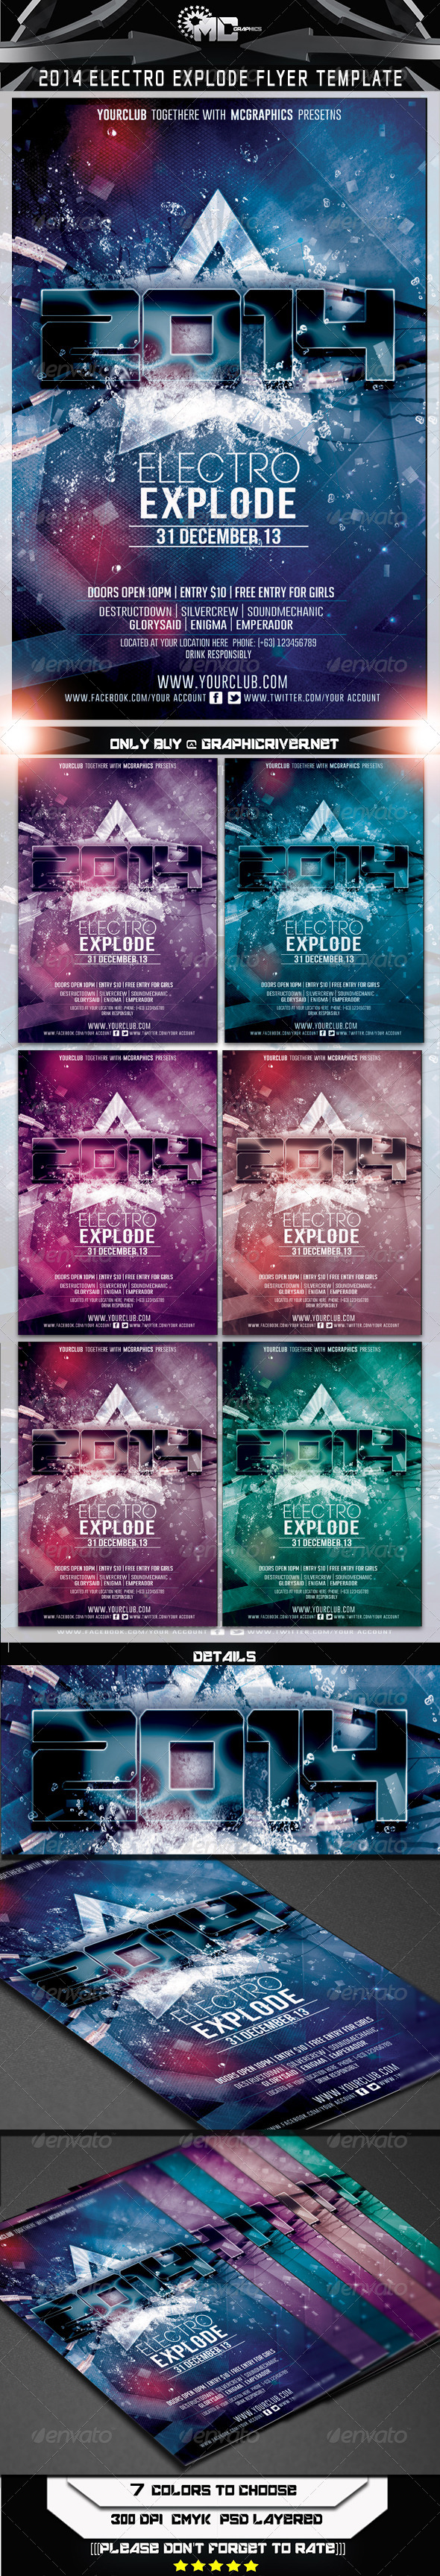 2014 Electro Explode Flyer Template - Events Flyers